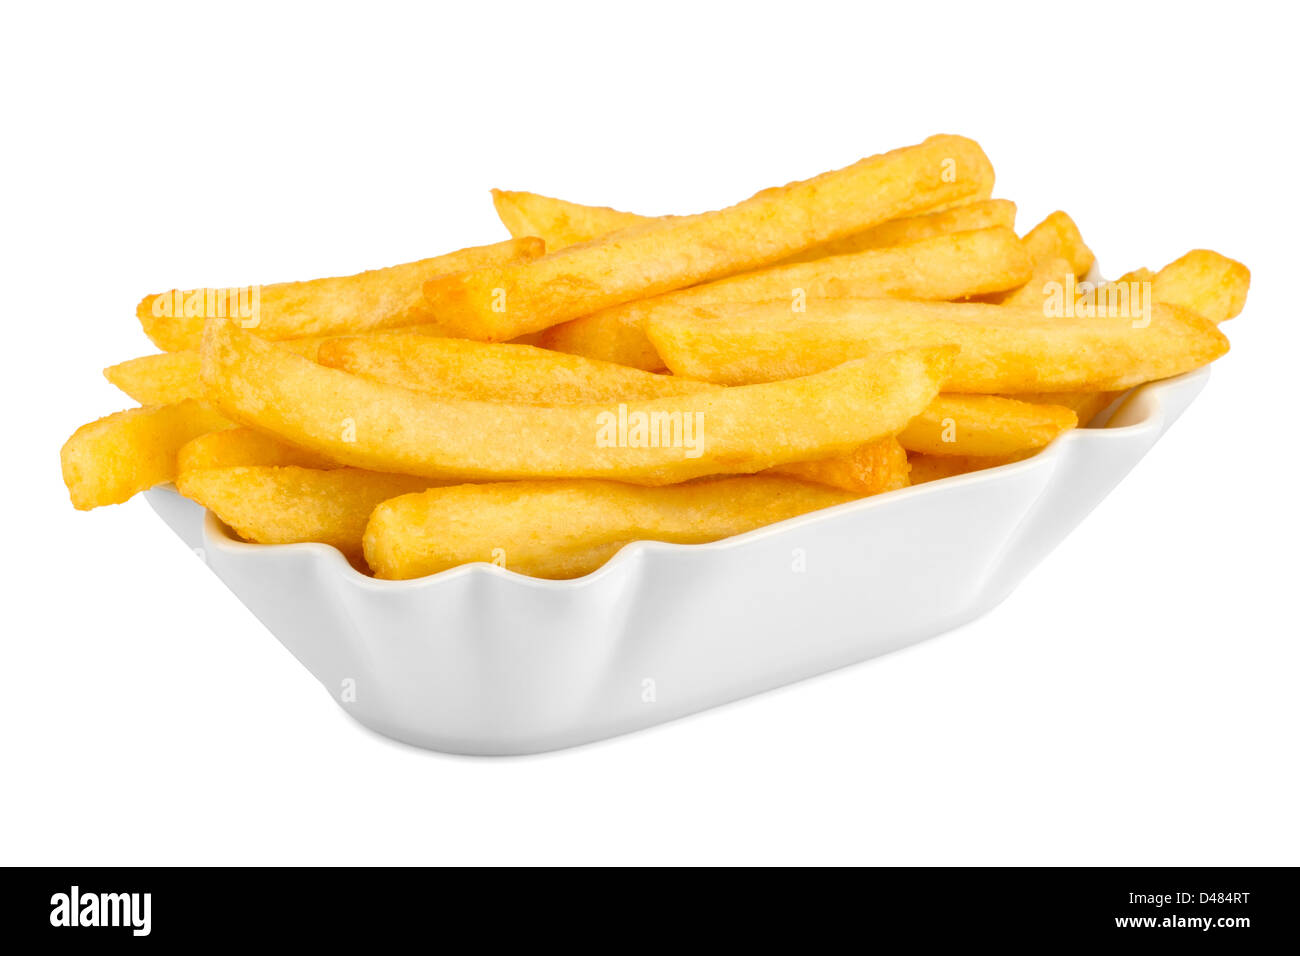 ceramic bowl with french fries. - Stock Image